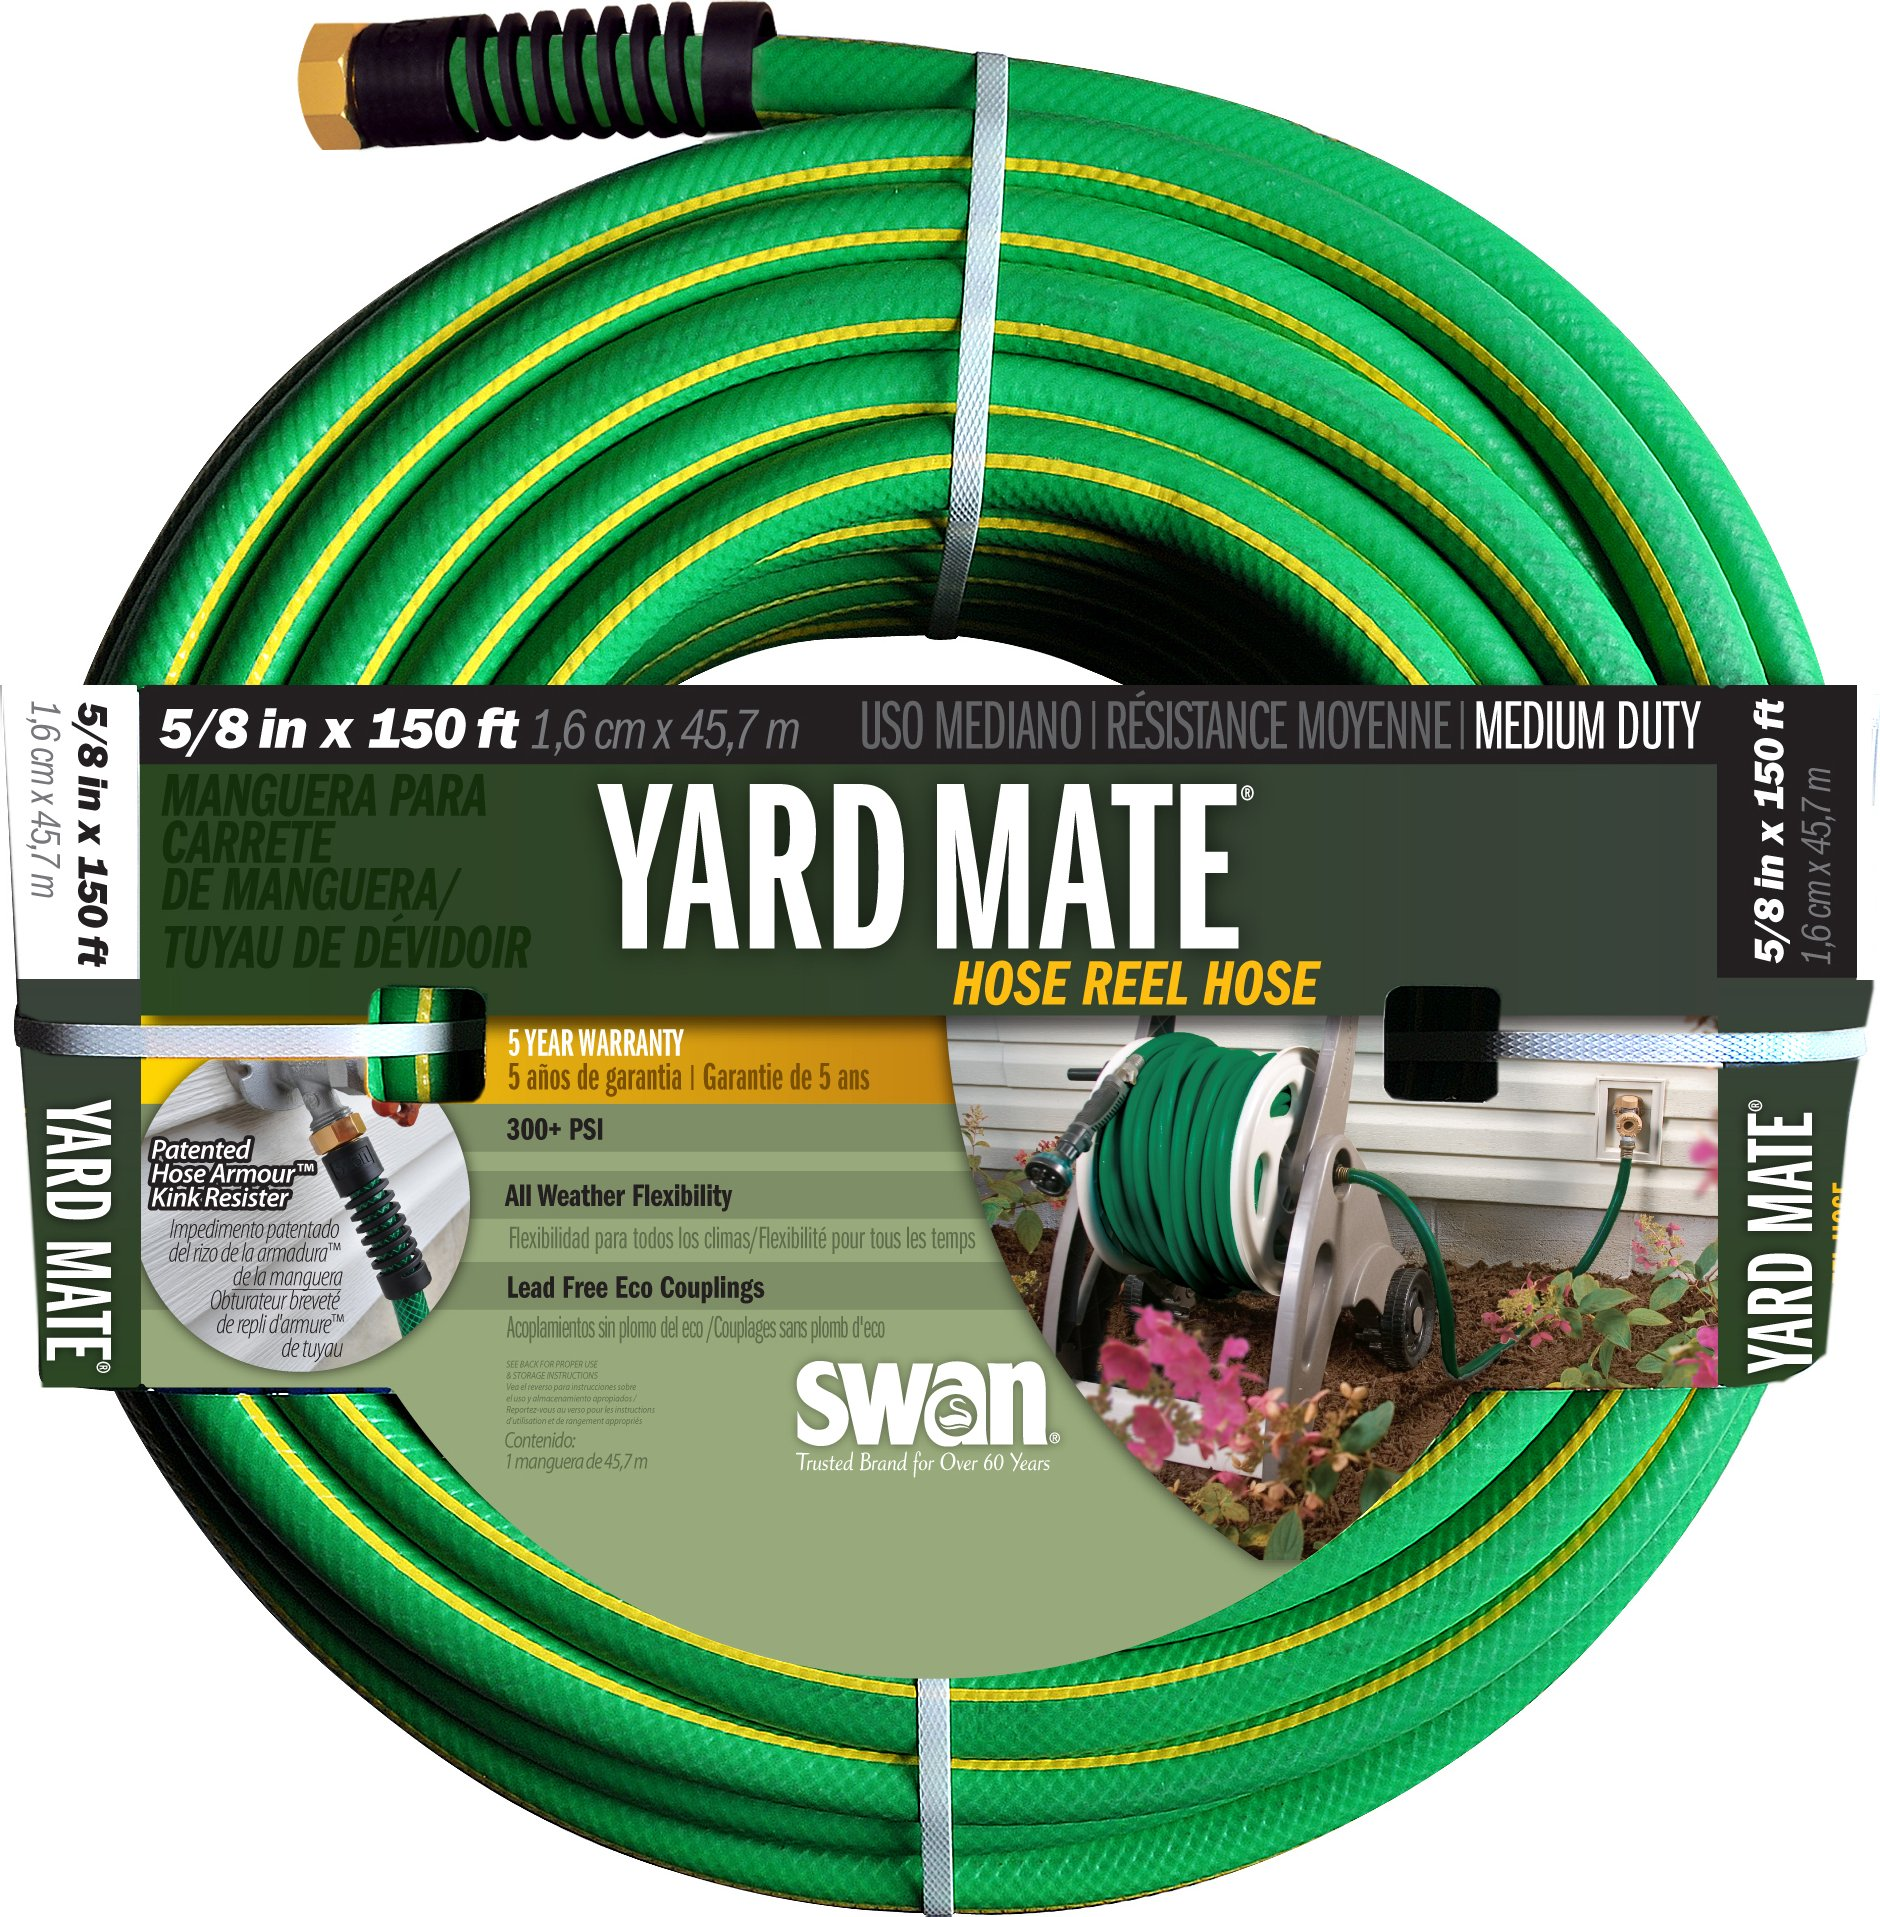 Swan Products SNHR58150 Yard Mate Easy Reel Lightweight Hose 150' x 5/8'', Green by Swan Products